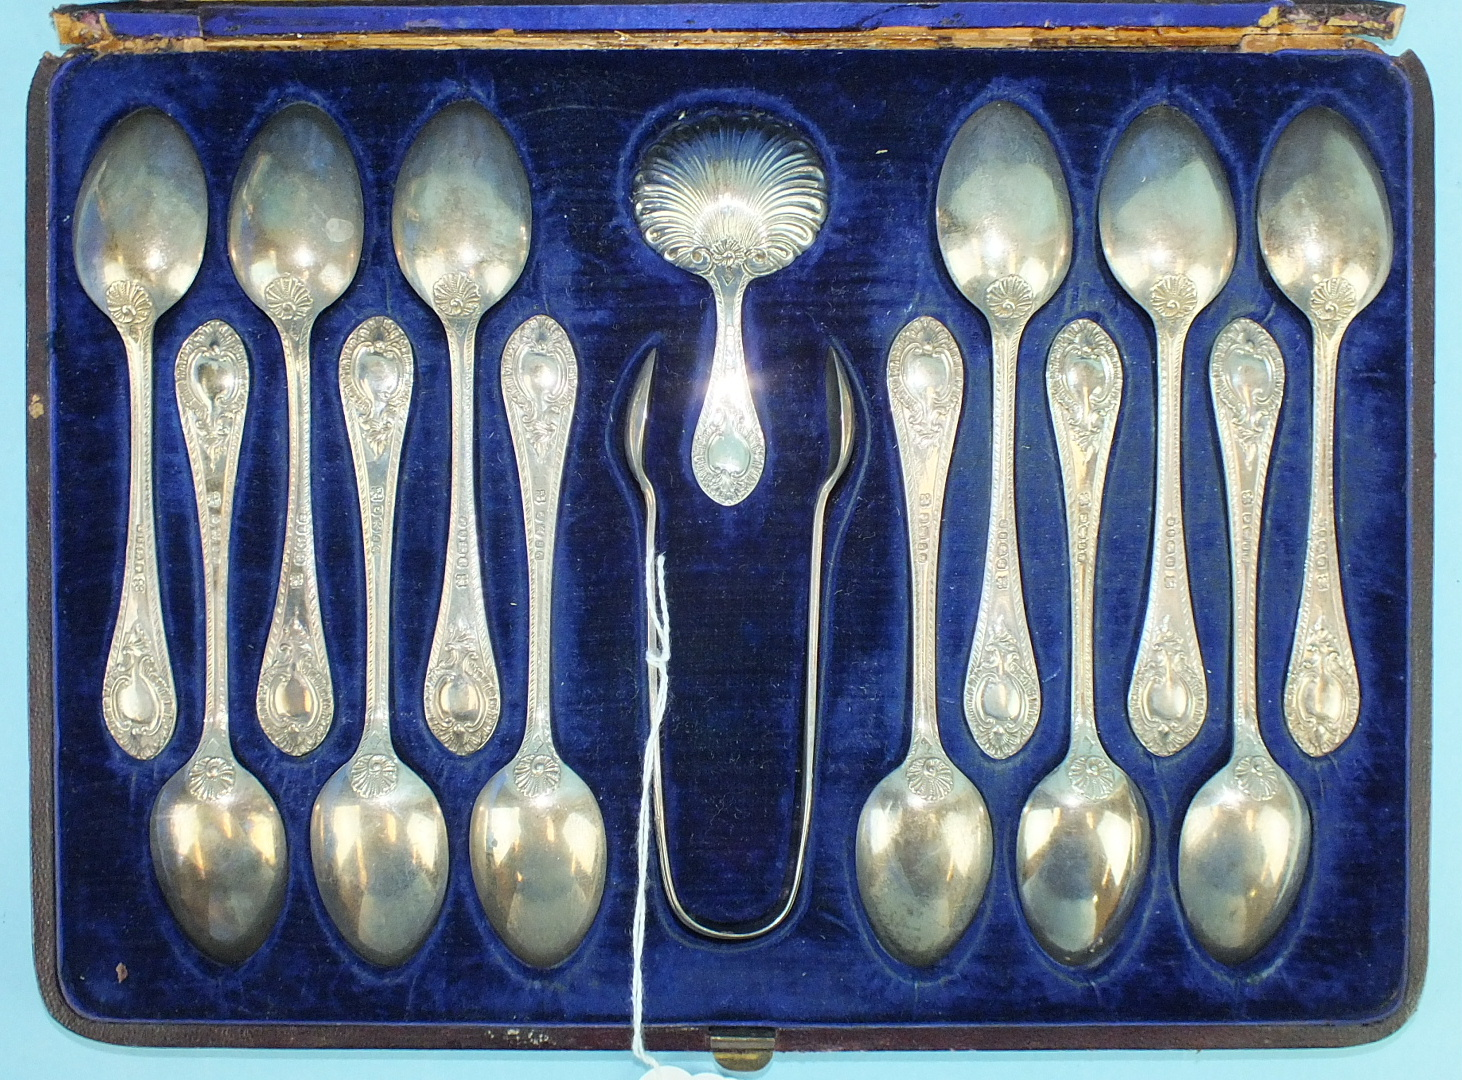 Lot 422 - A cased set of twelve silver teaspoons, sugar tongs, Sheffield 1873 and similar caddy spoon with